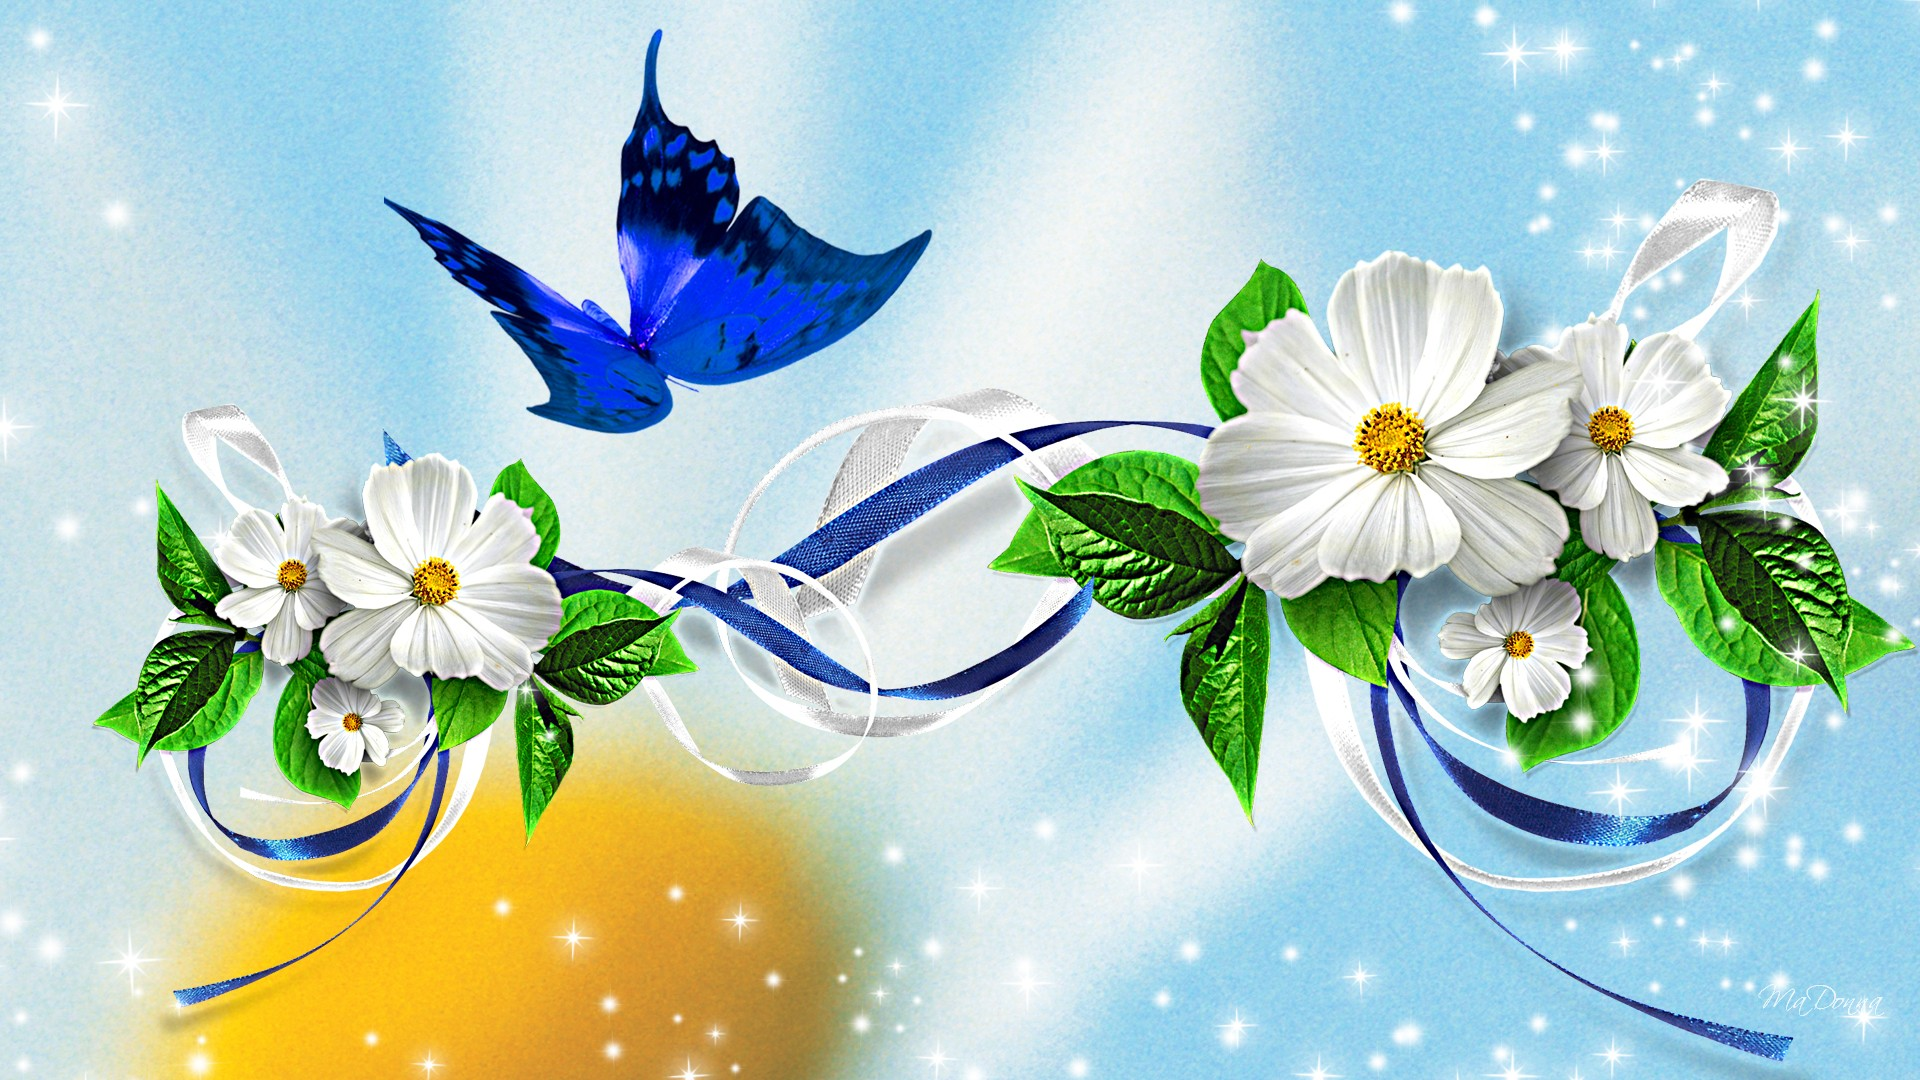 Awesome Butterfly Ribbon Blue HD Wallpaper Unique HD Wallpapers 1920x1080